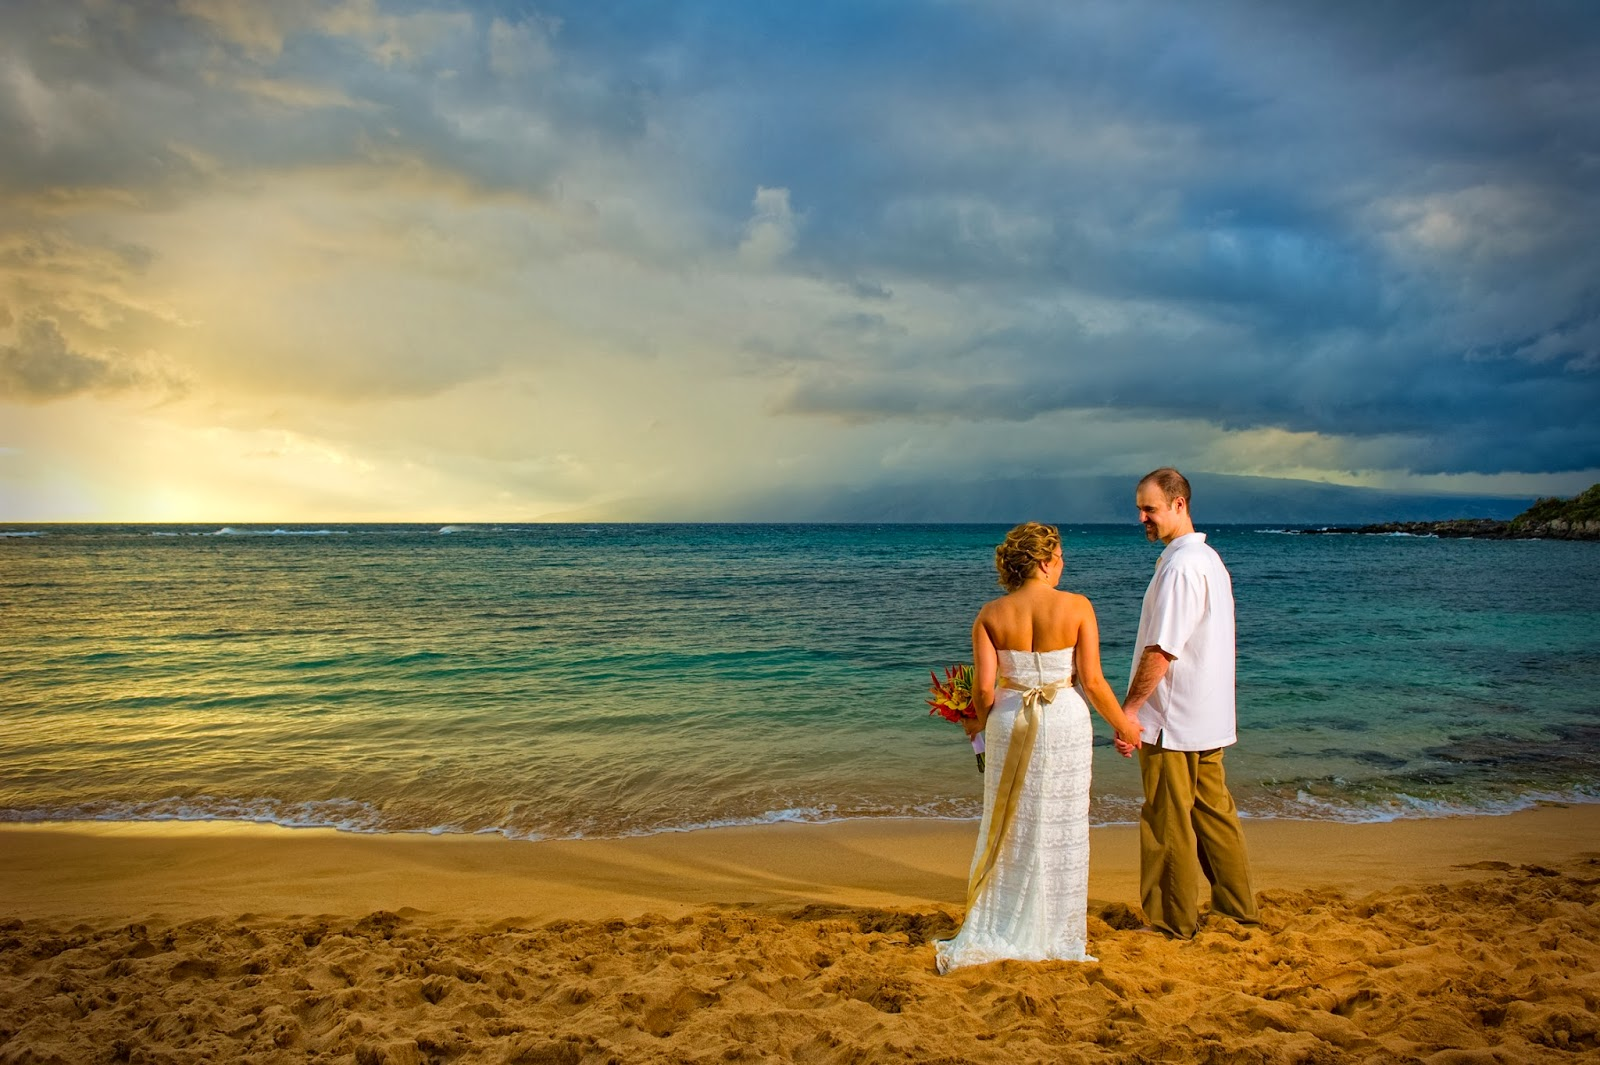 maui weddig planners, maui weddings, maui wedding photographers, maui photographers, wedding planners maui